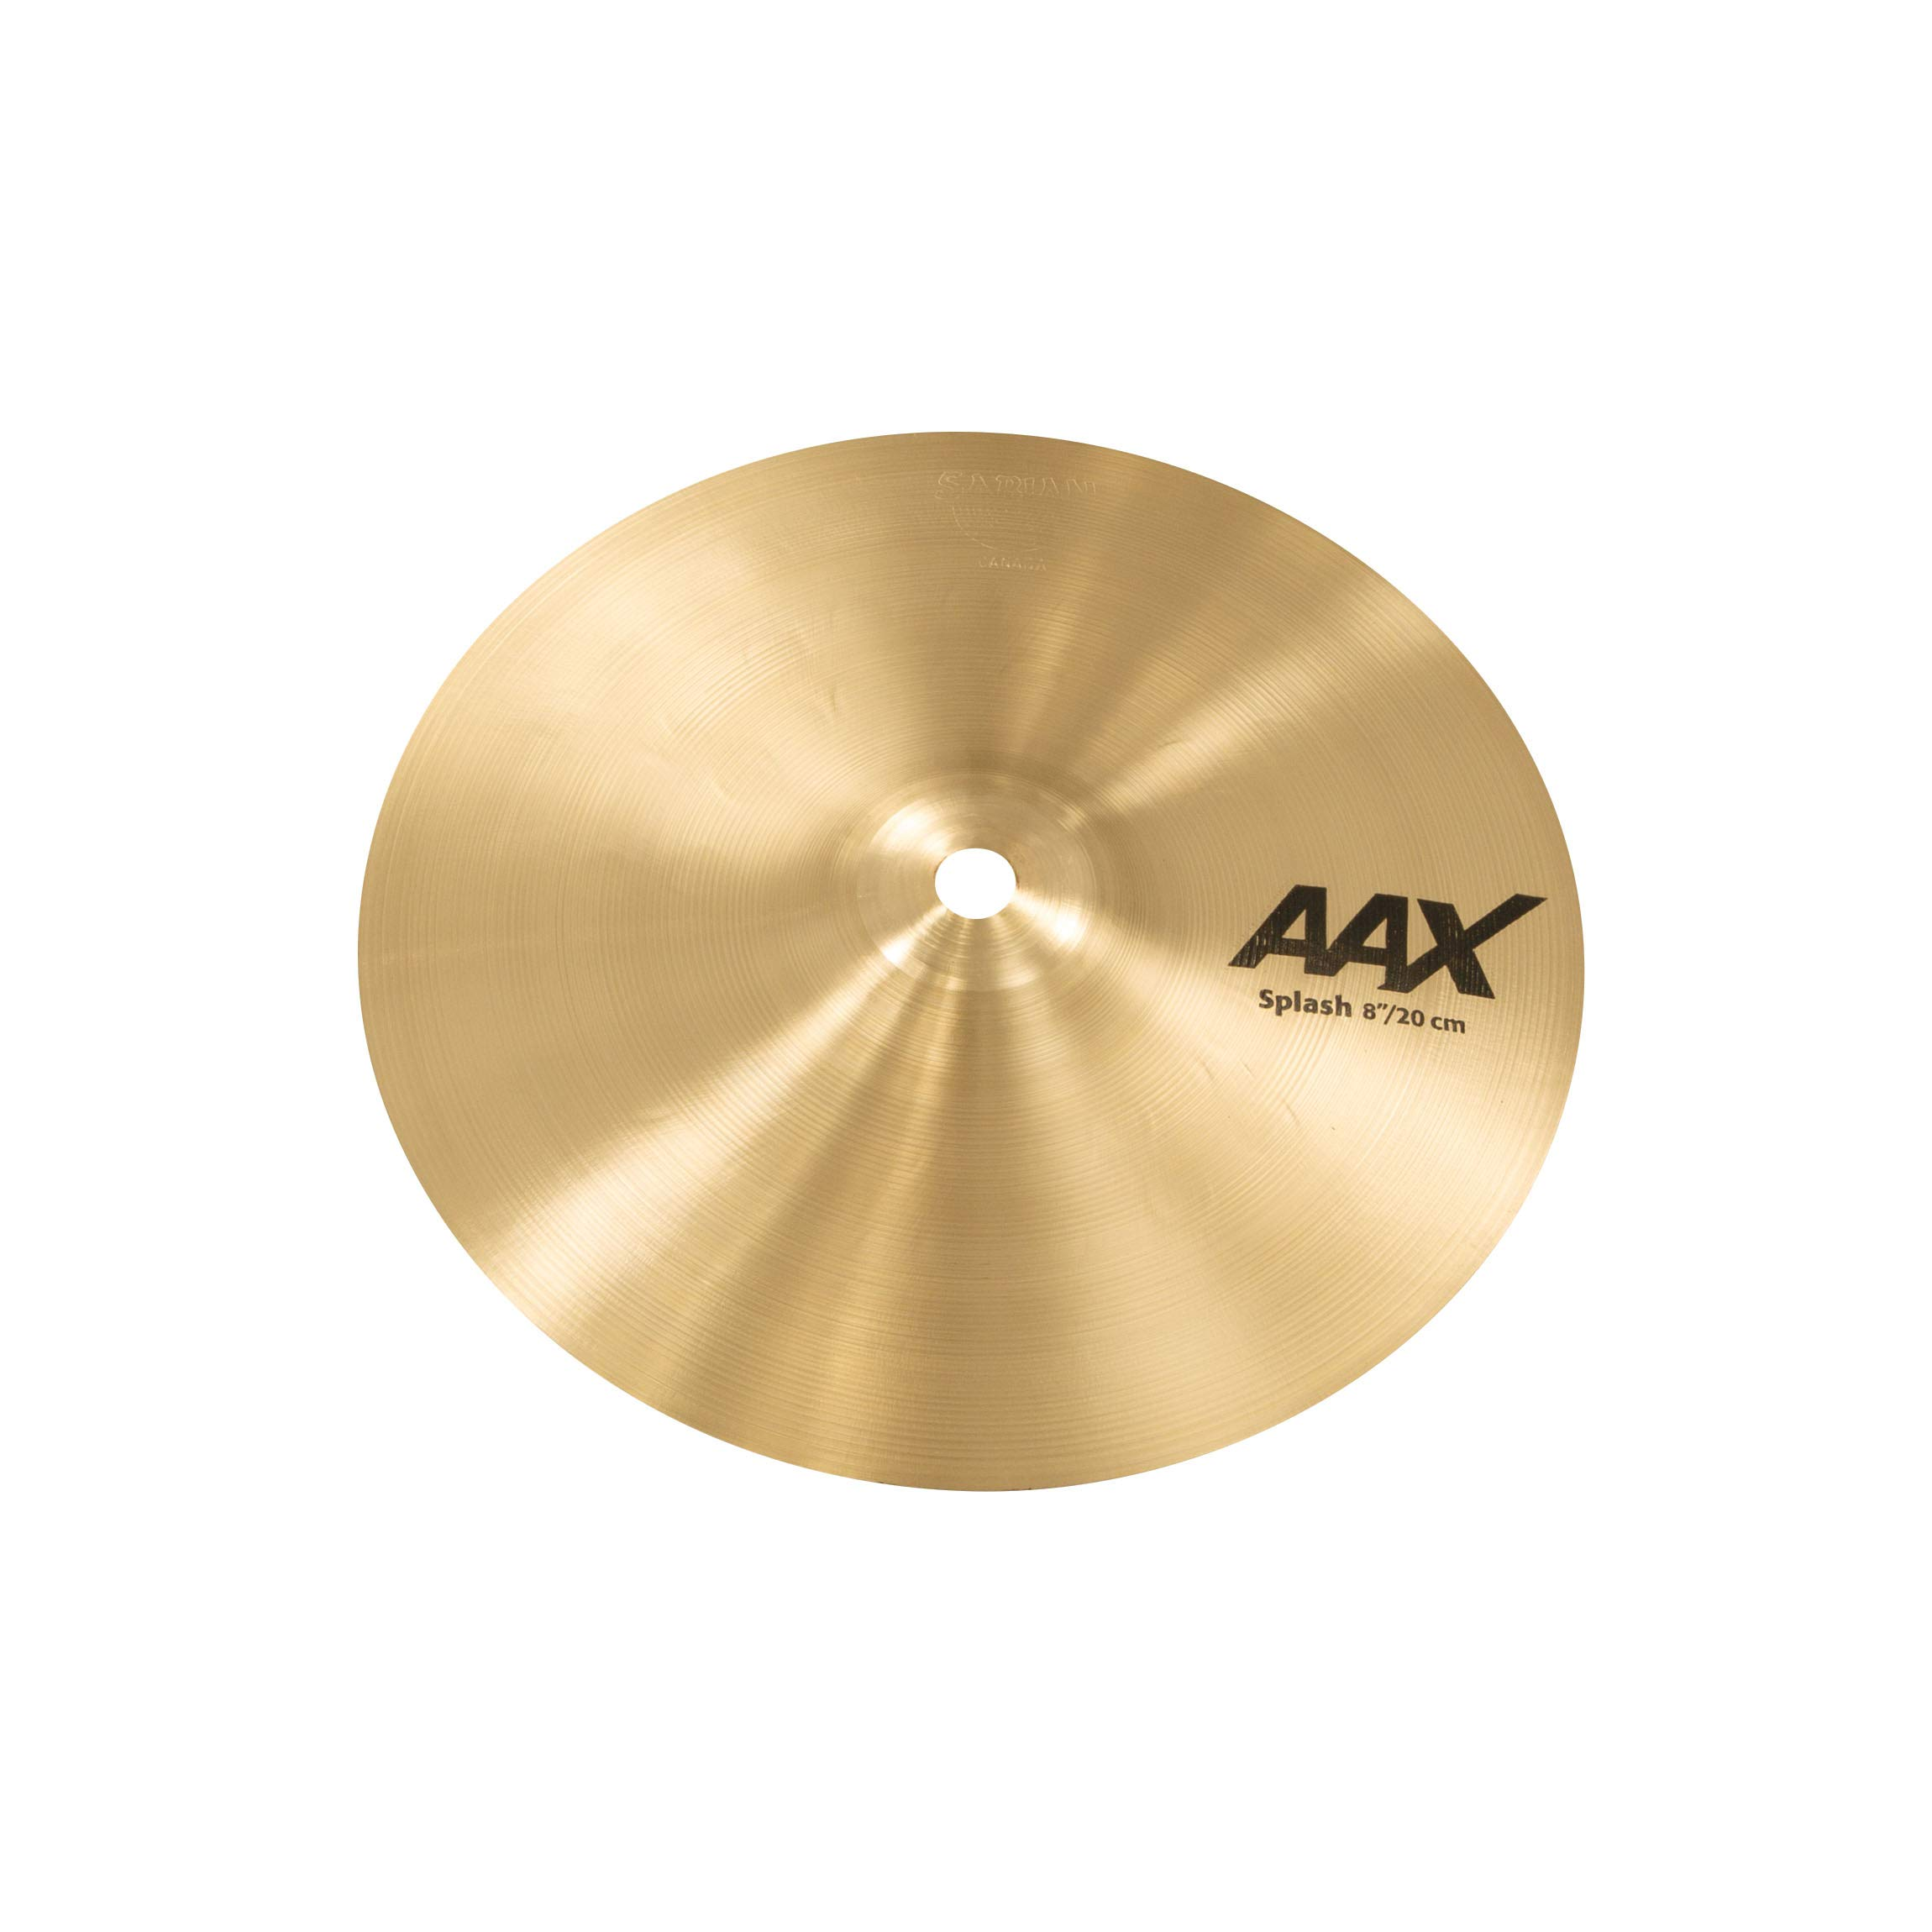 Sabian Cymbal Variety Package (20805X) by Sabian